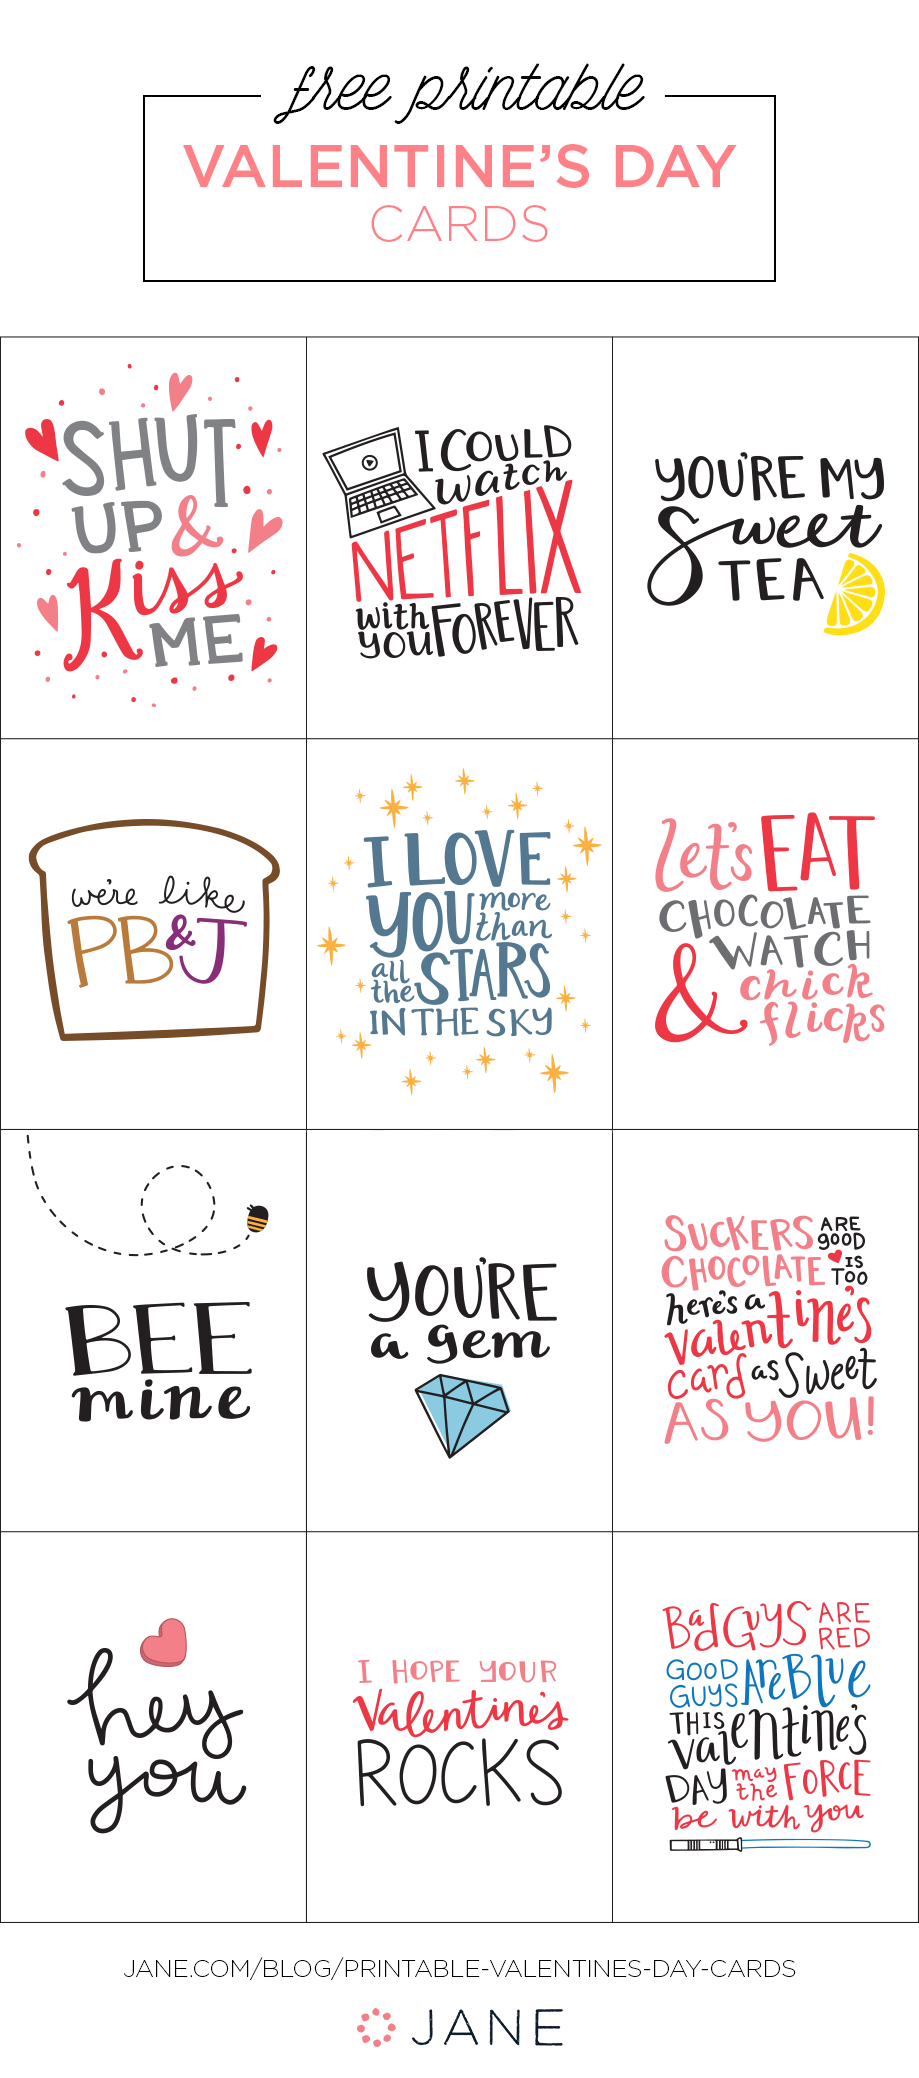 50+ Easy Diy And Printable Valentines | Mompop | Printable - Free Printable Valentine Cards For Husband